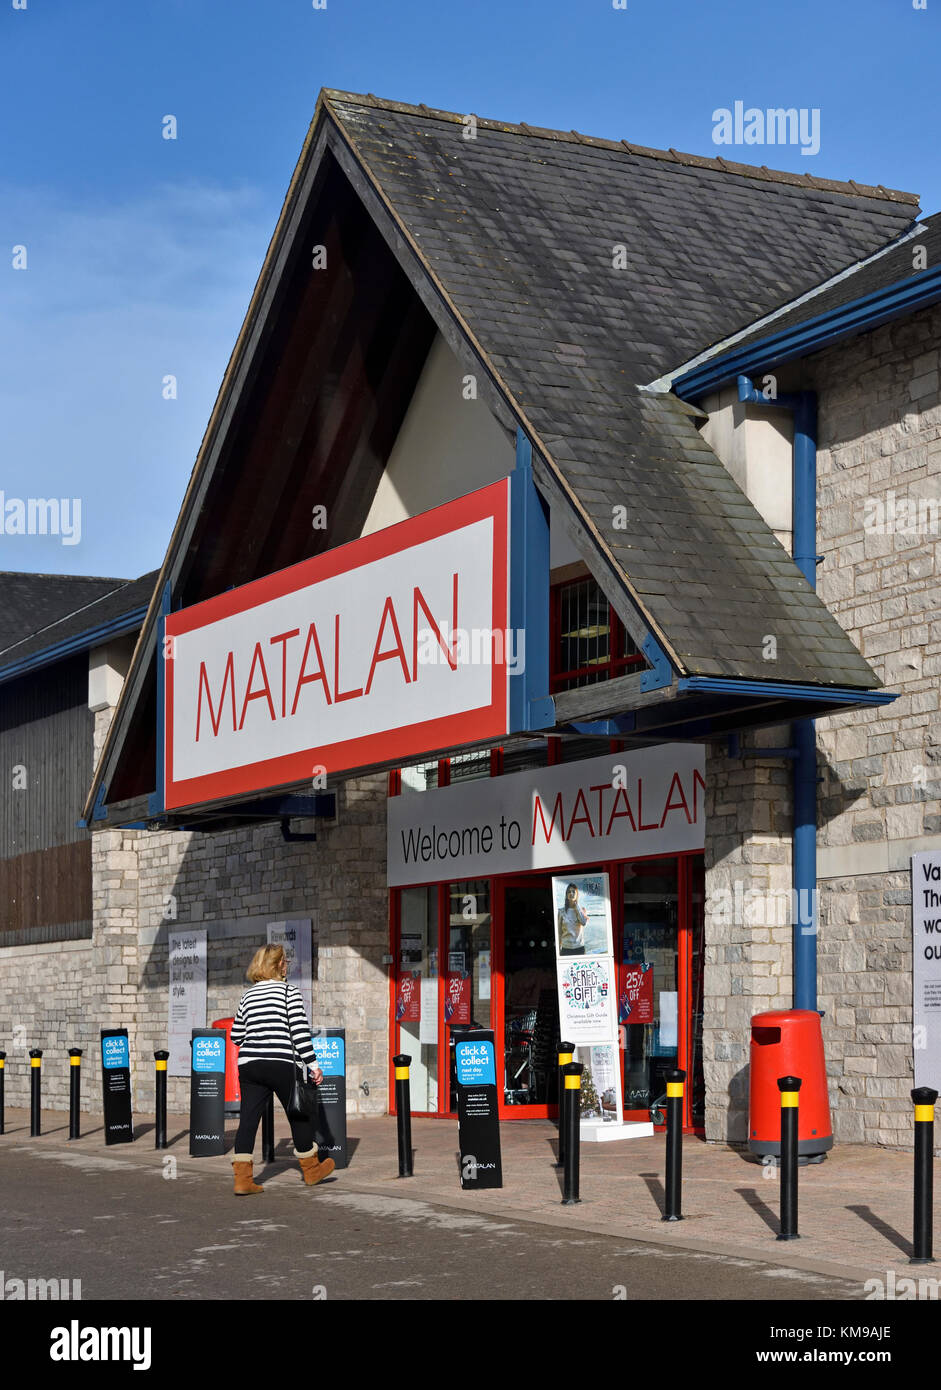 Customer approaching Matalan Store. The Old Showground, Kendal, Cumbria, England, United Kingdom, Europe. - Stock Image